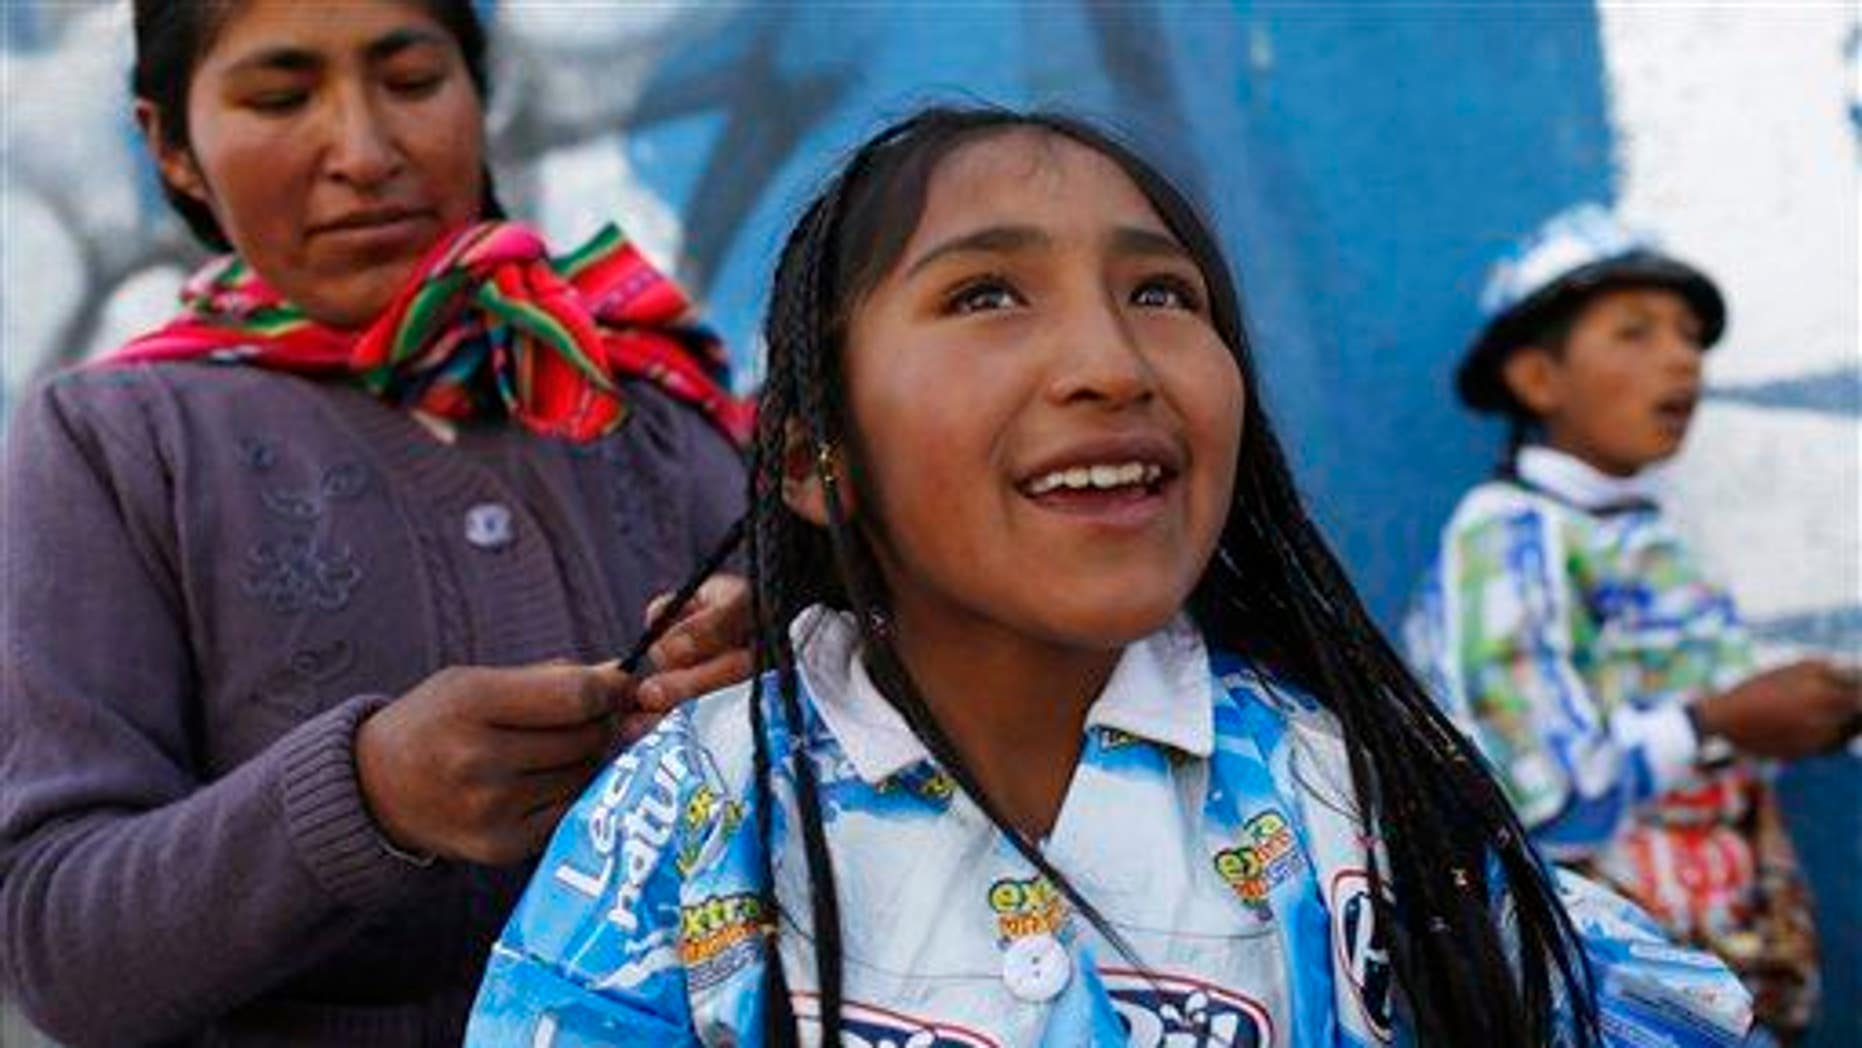 An indigenous woman braids her daughter's hair before the start of a parade in El Alto, Bolivia, Friday, Oct. 23, 2015.